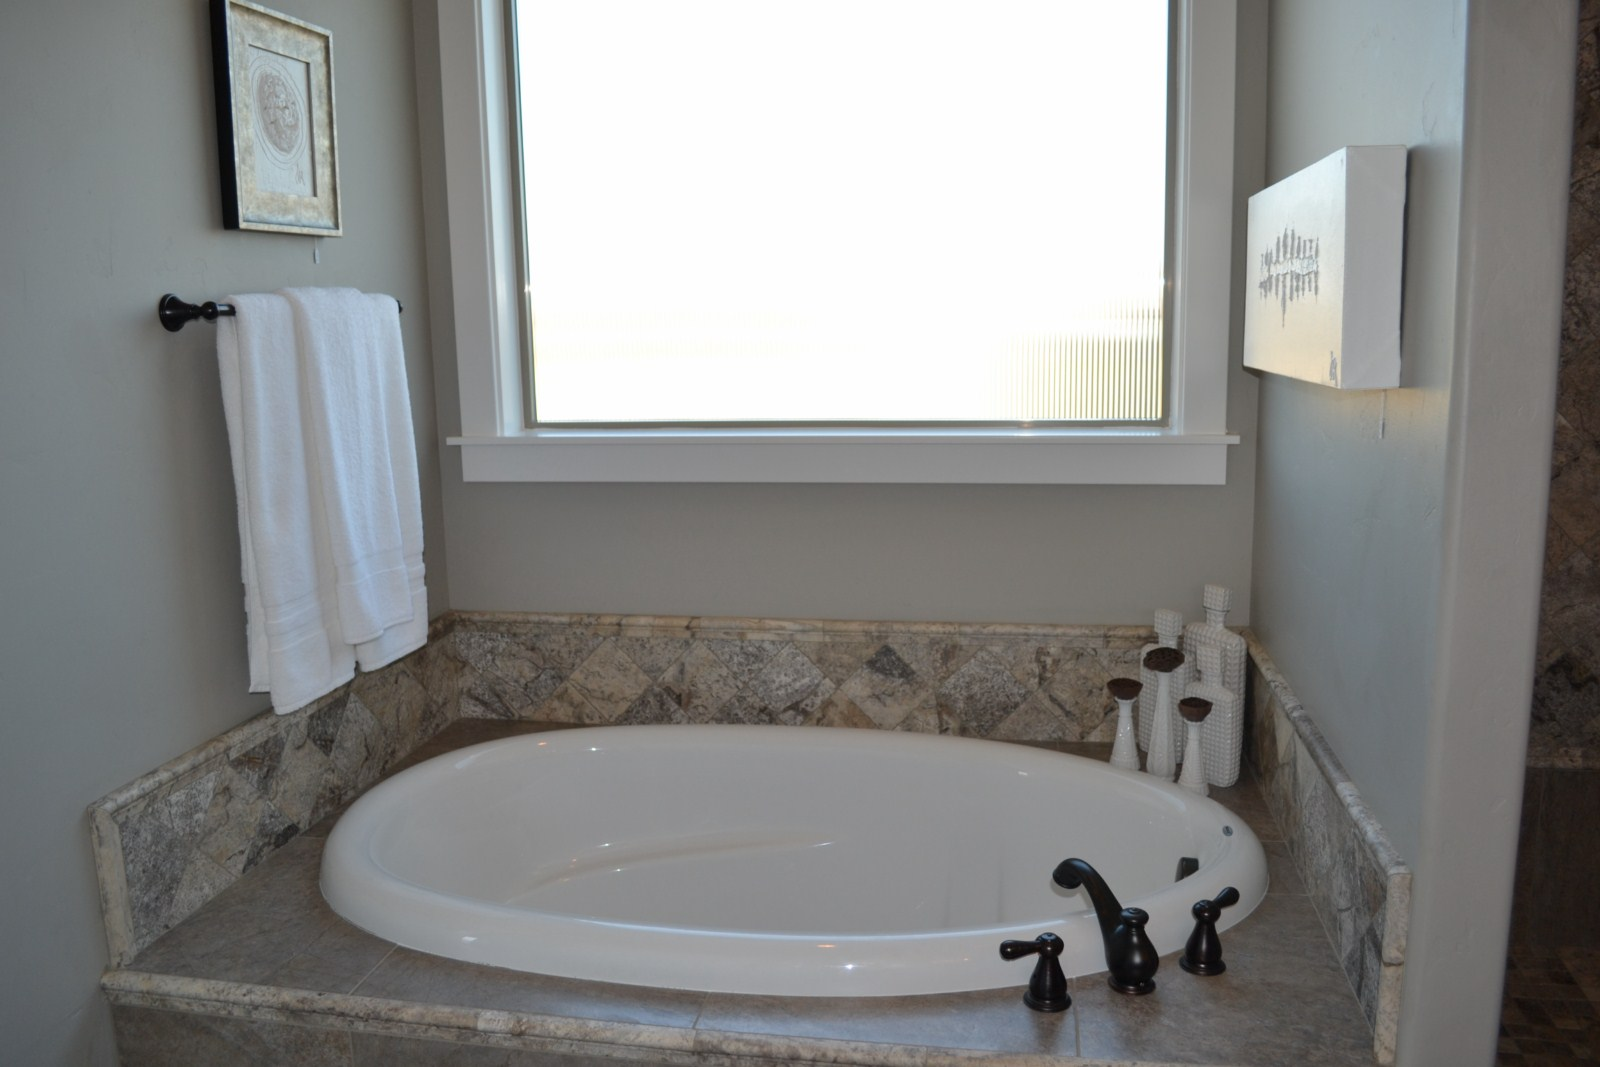 Mobile home bathtub 28 images 54x42 fiberglass for Fiberglass garden tub